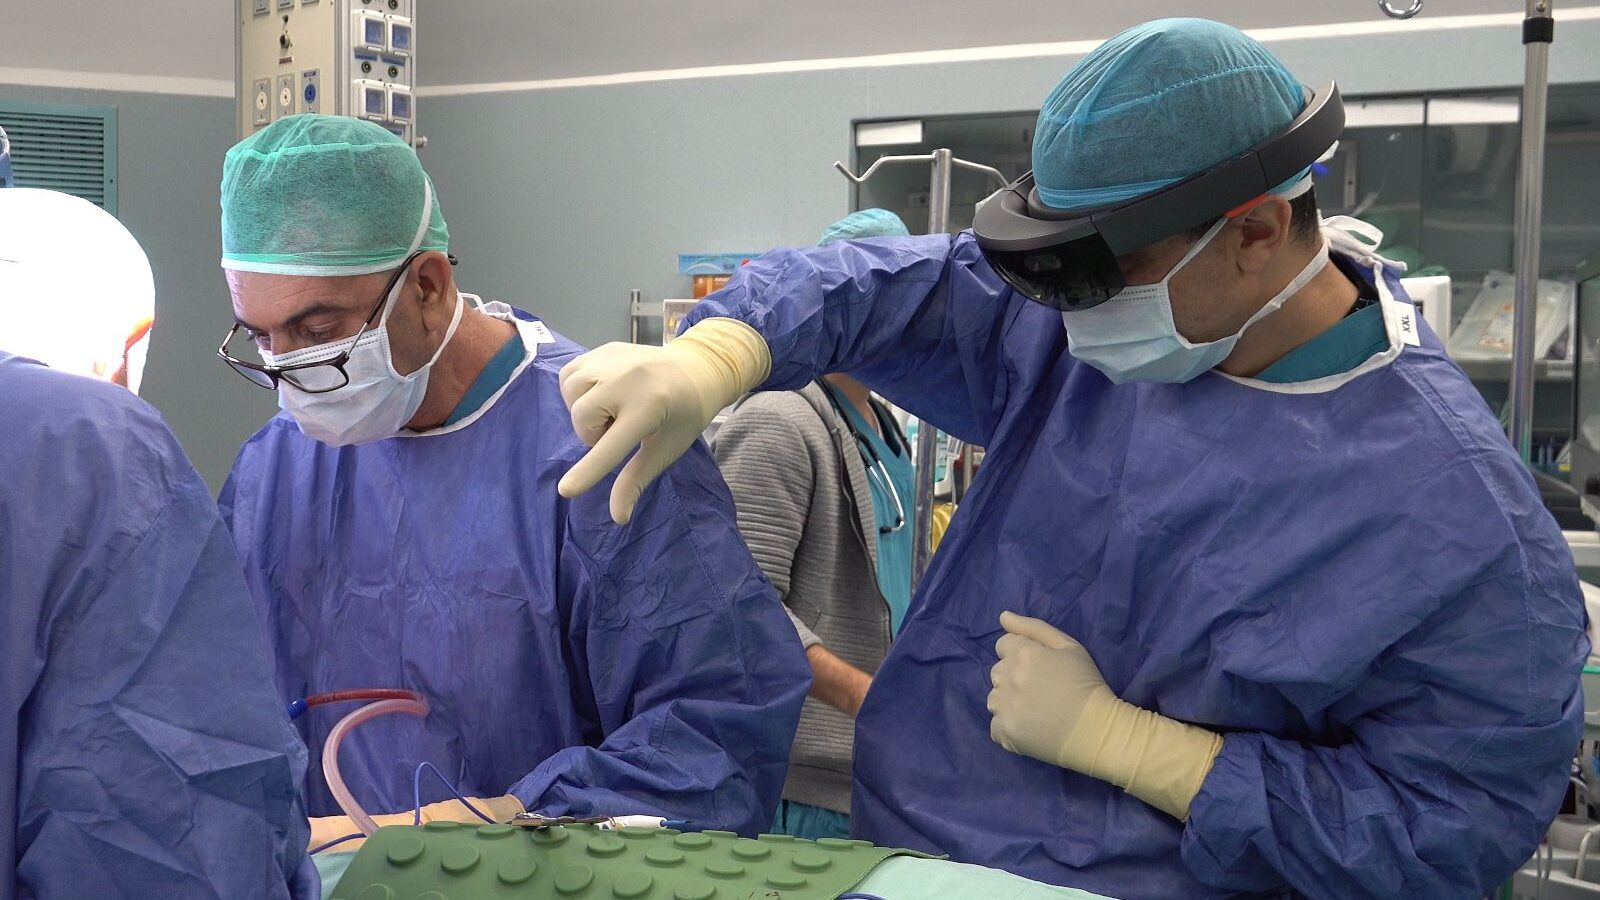 Doctors Use Augmented Reality, 3D Tech in Surgical First